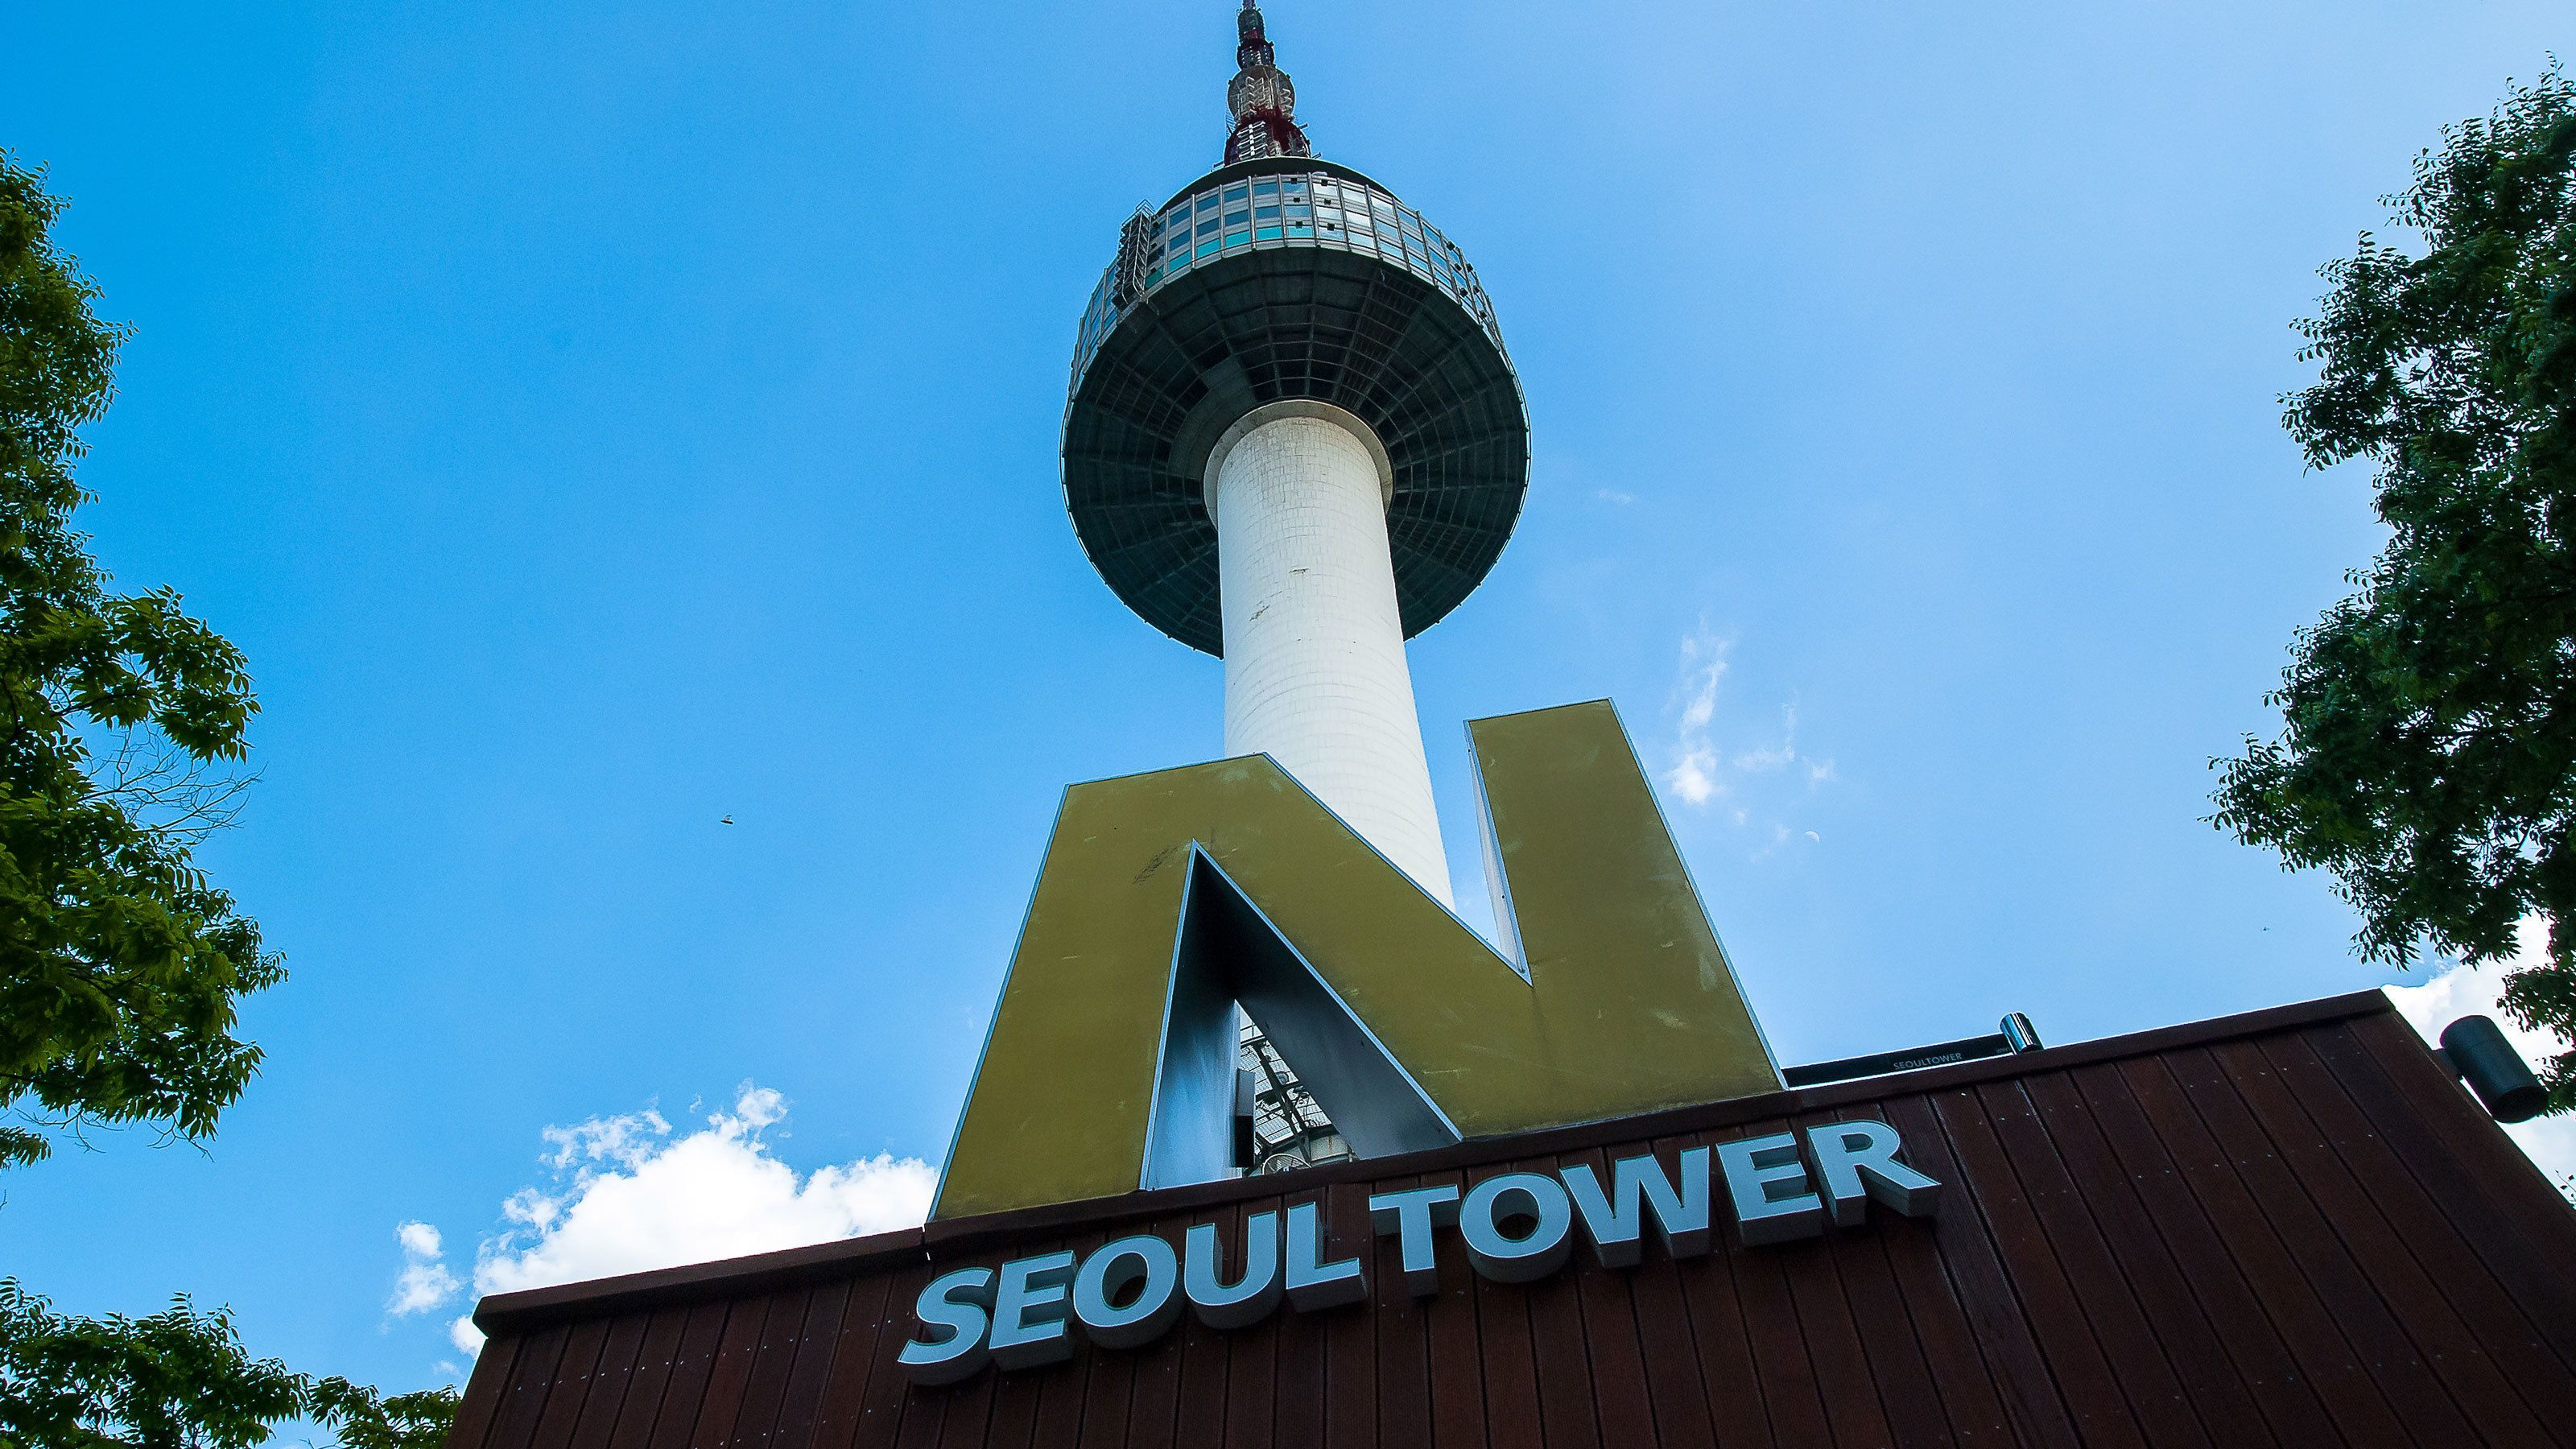 Seoul Tower sign